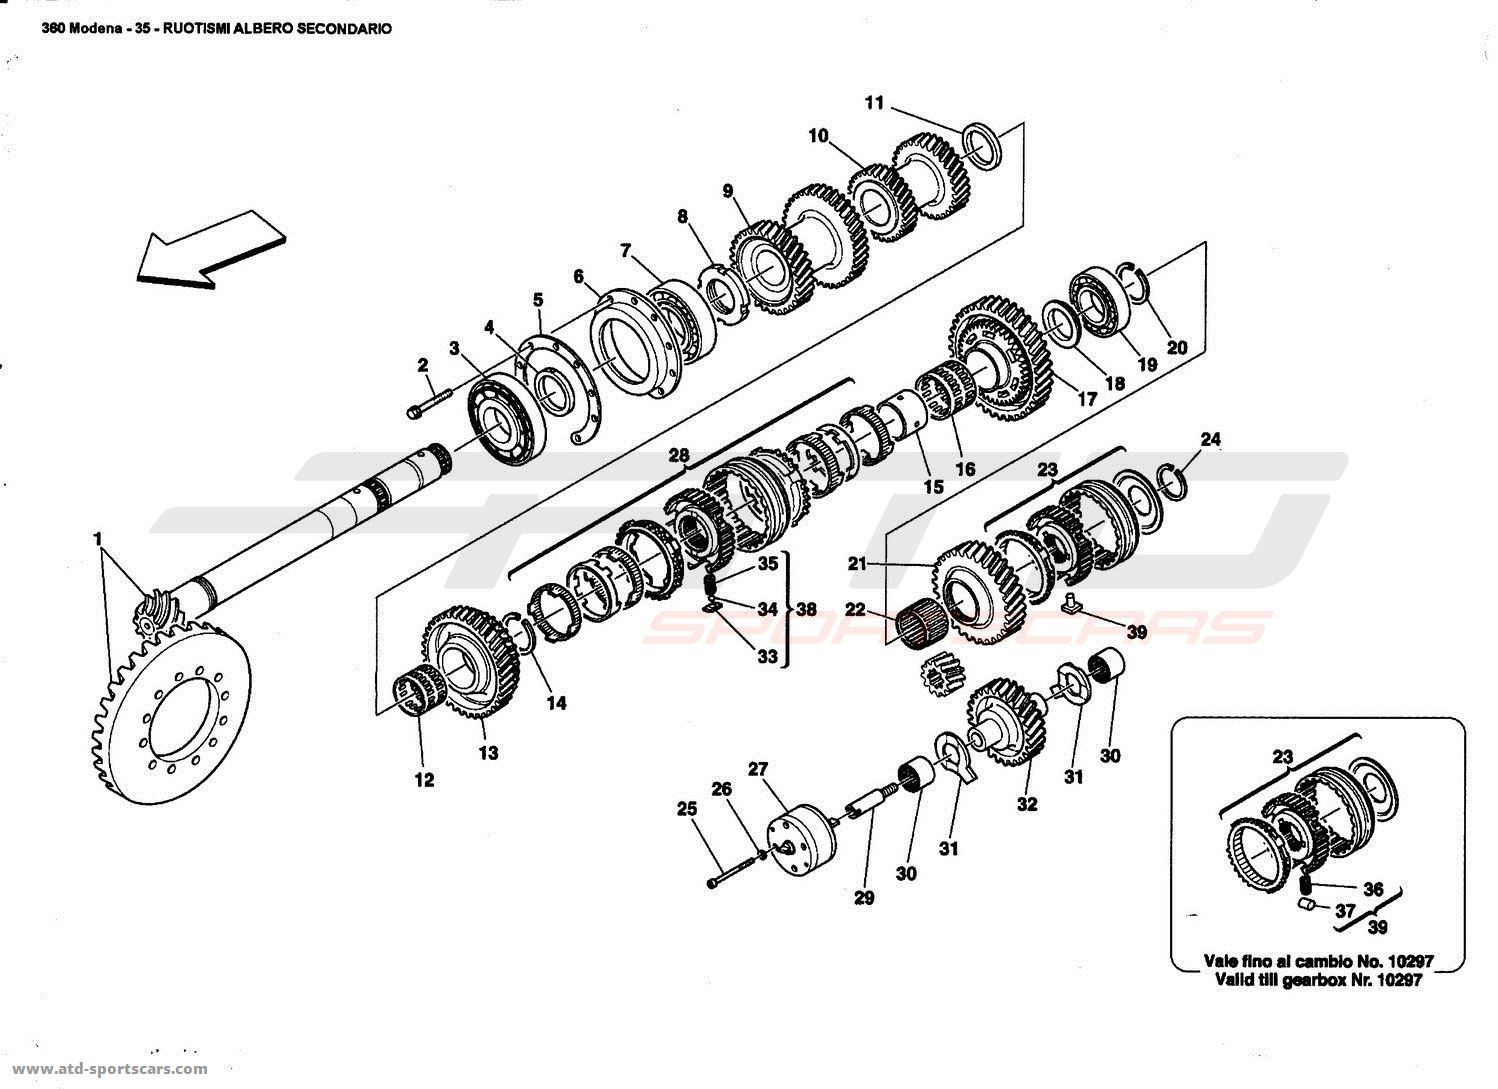 Ferrari 360 Modena LAY SHAFT GEARS parts at ATD-Sportscars